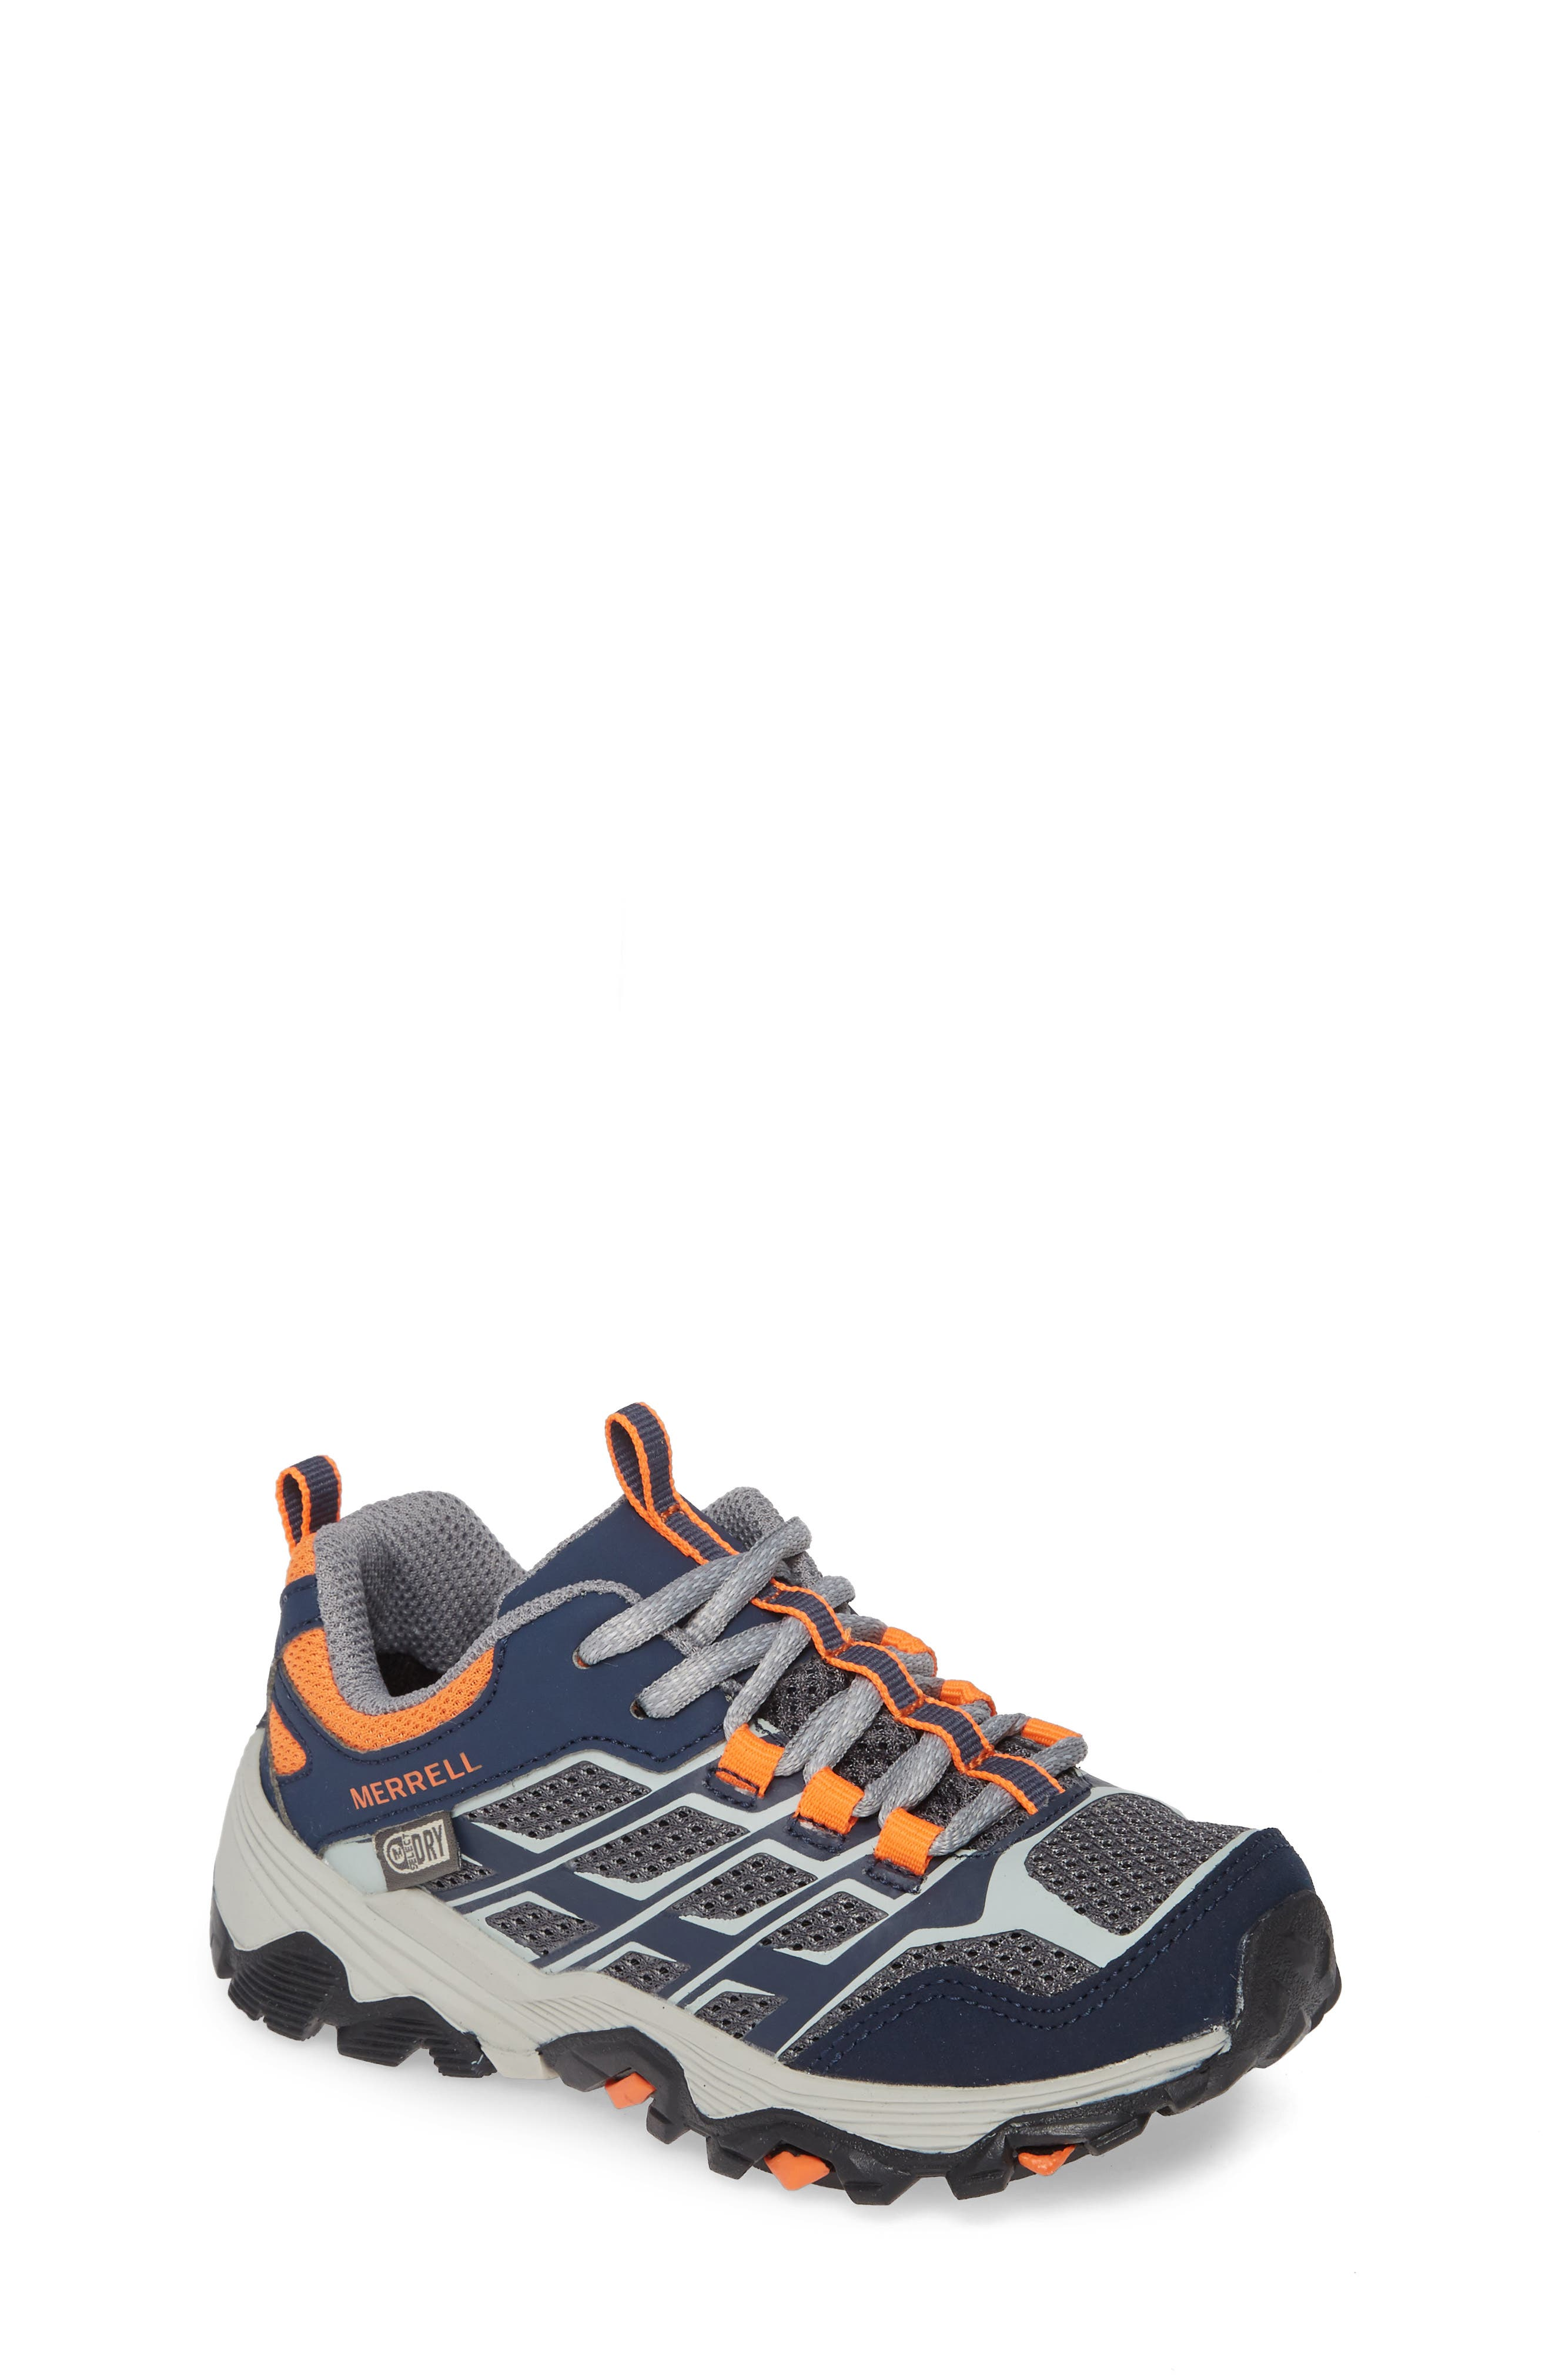 86775939be Big Boys' Merrell Shoes (Sizes 3.5-7) | Nordstrom